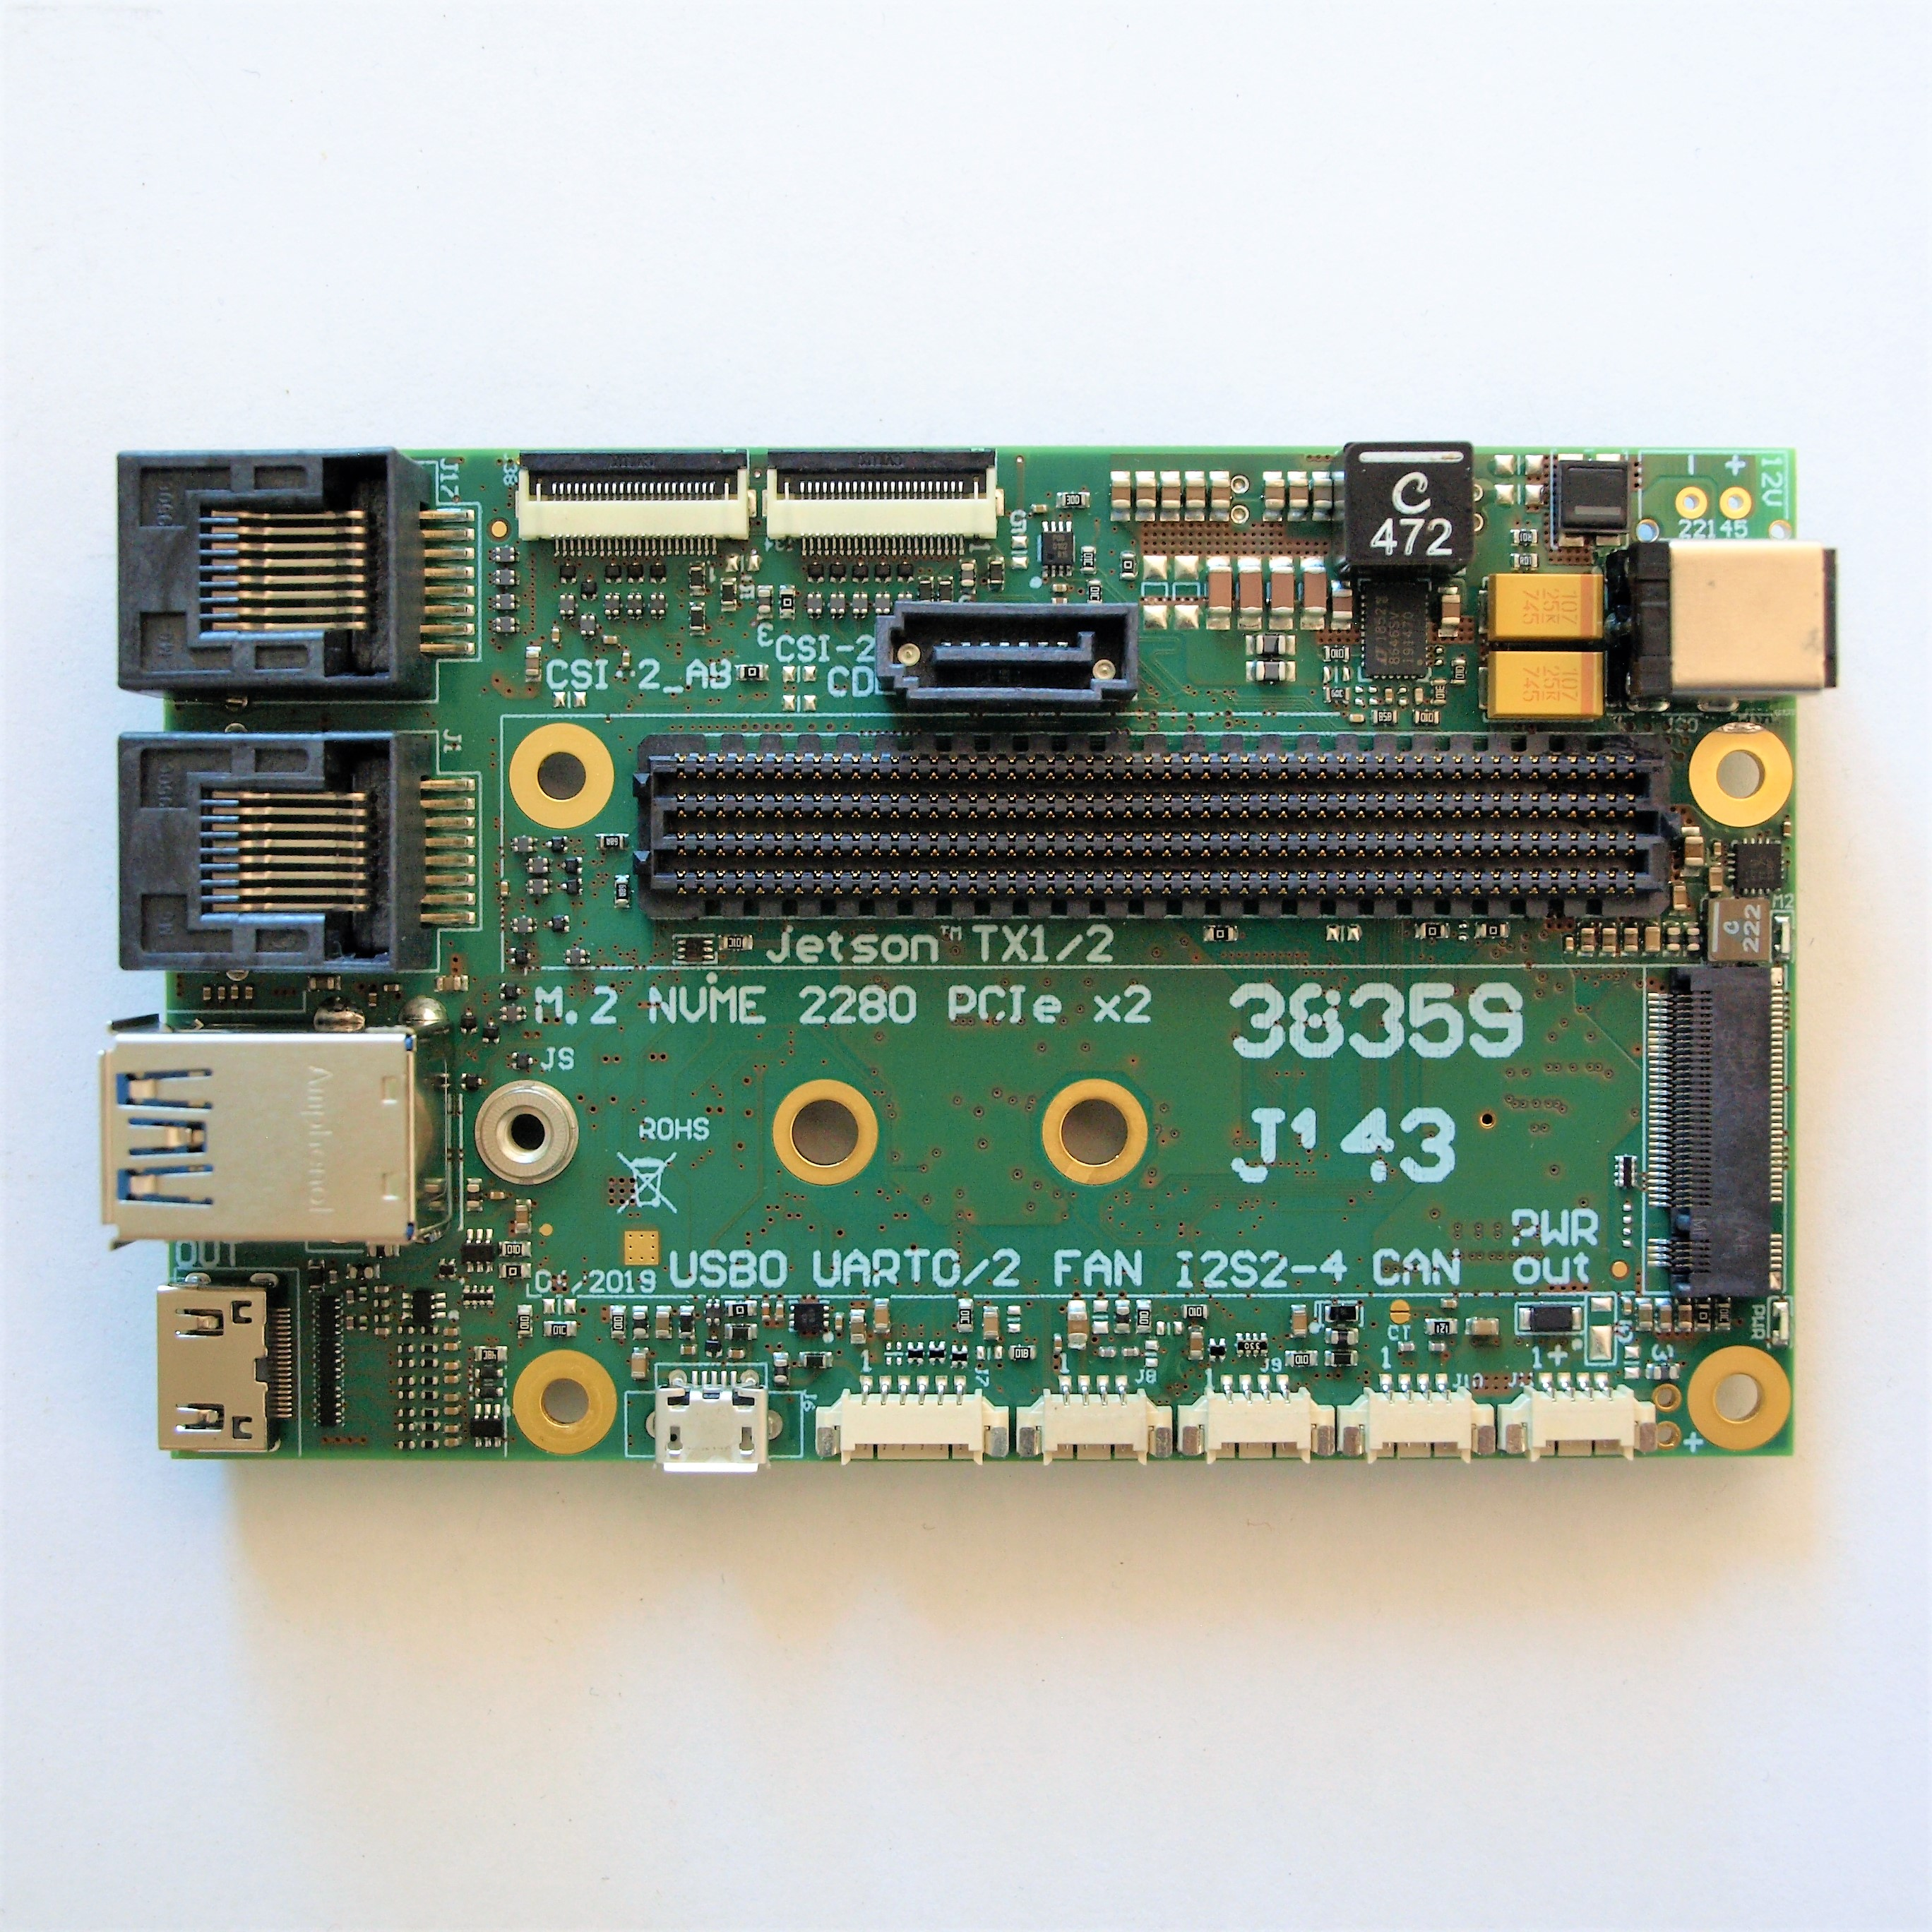 Jetson TX2 carrier board